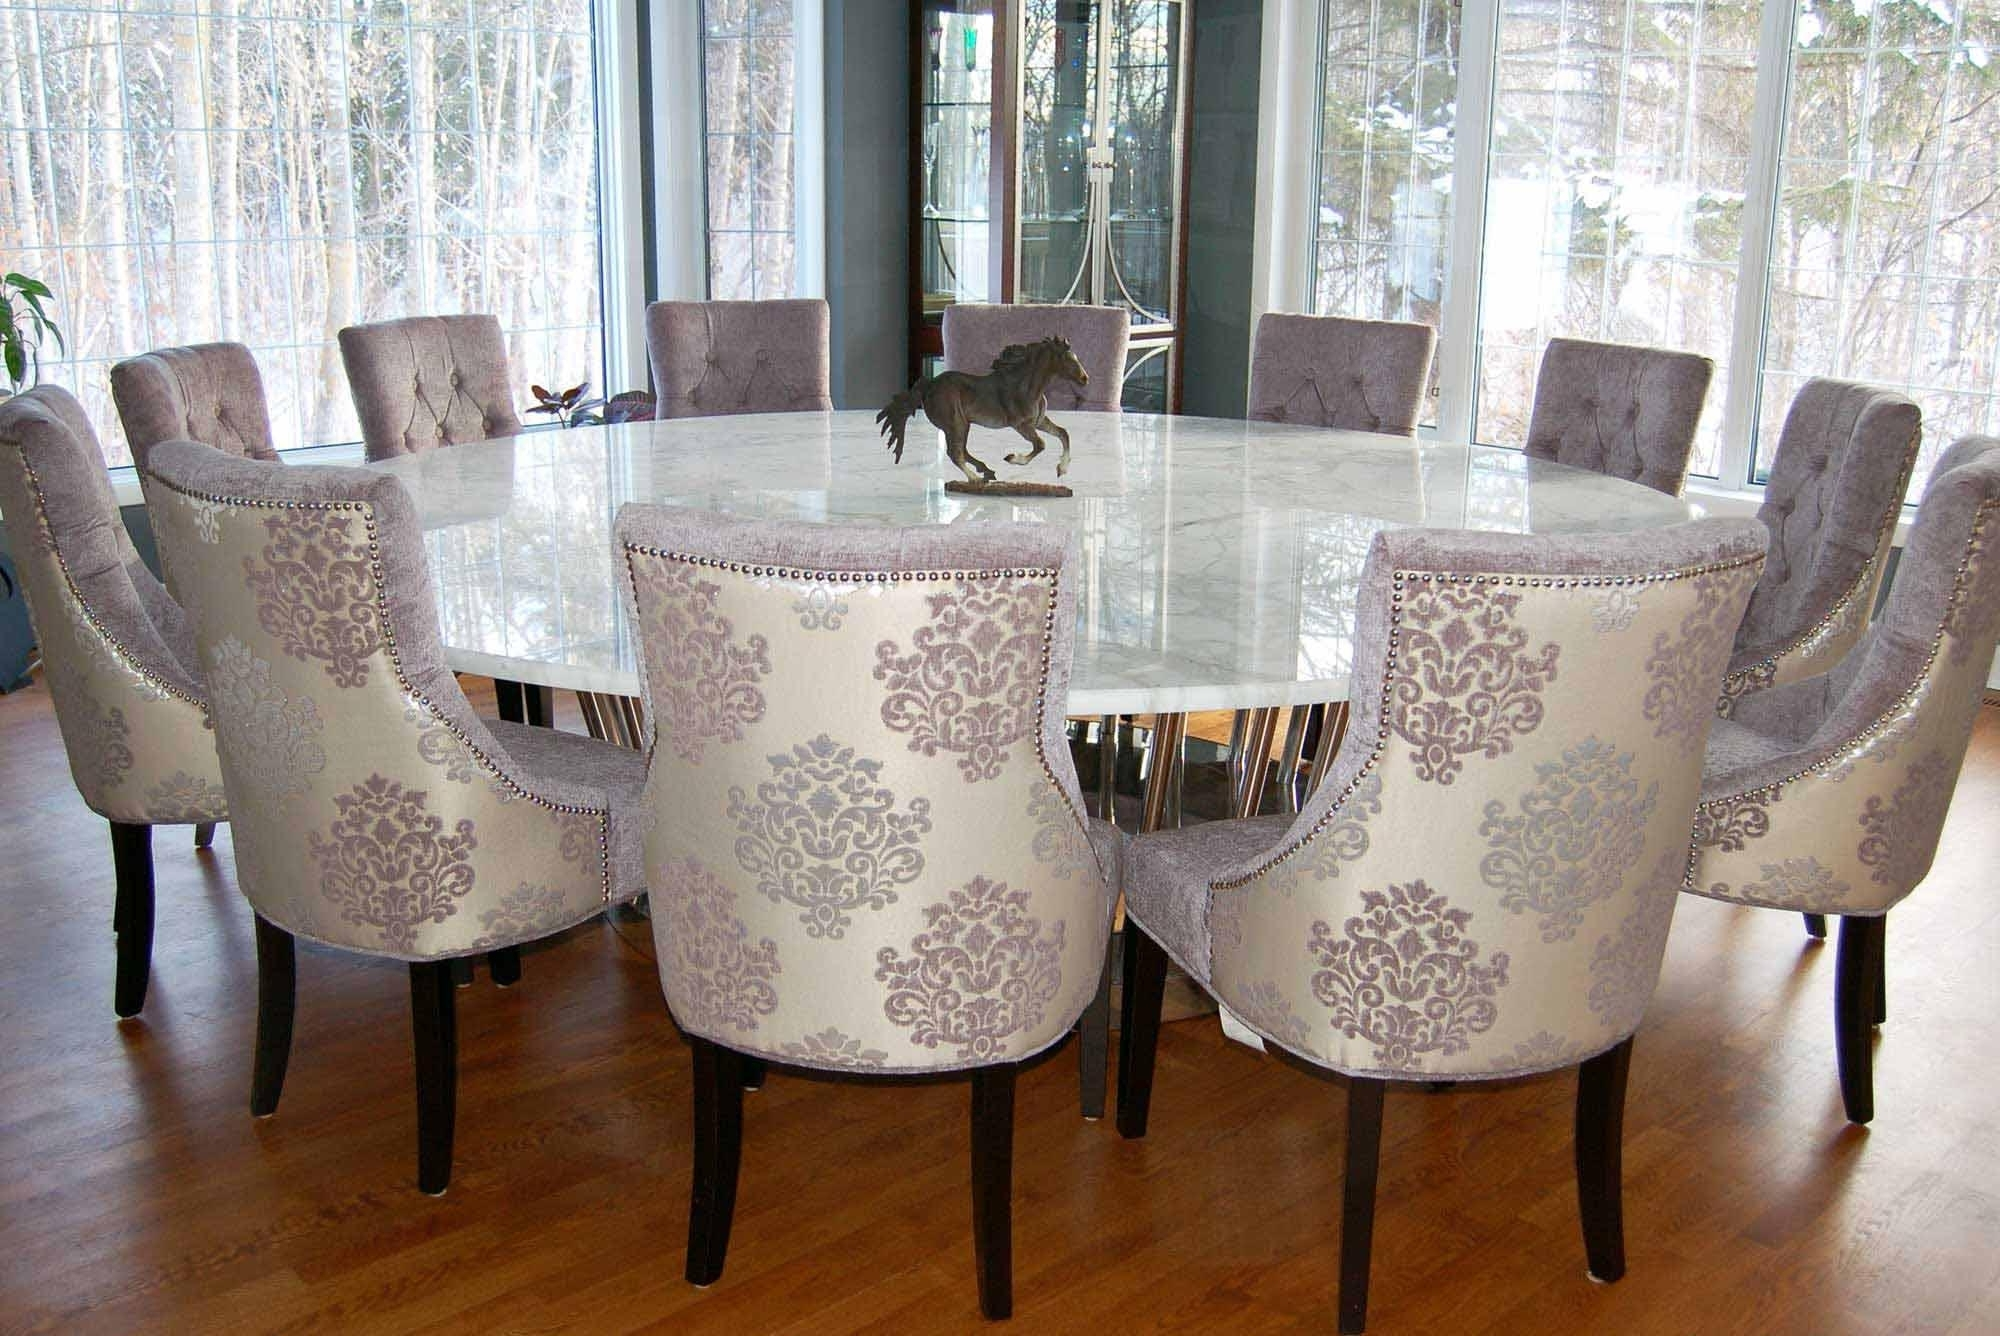 6 Person Round Dining Tables intended for Recent 12 Seater Round Dining Table And Chairs - Round Table Ideas